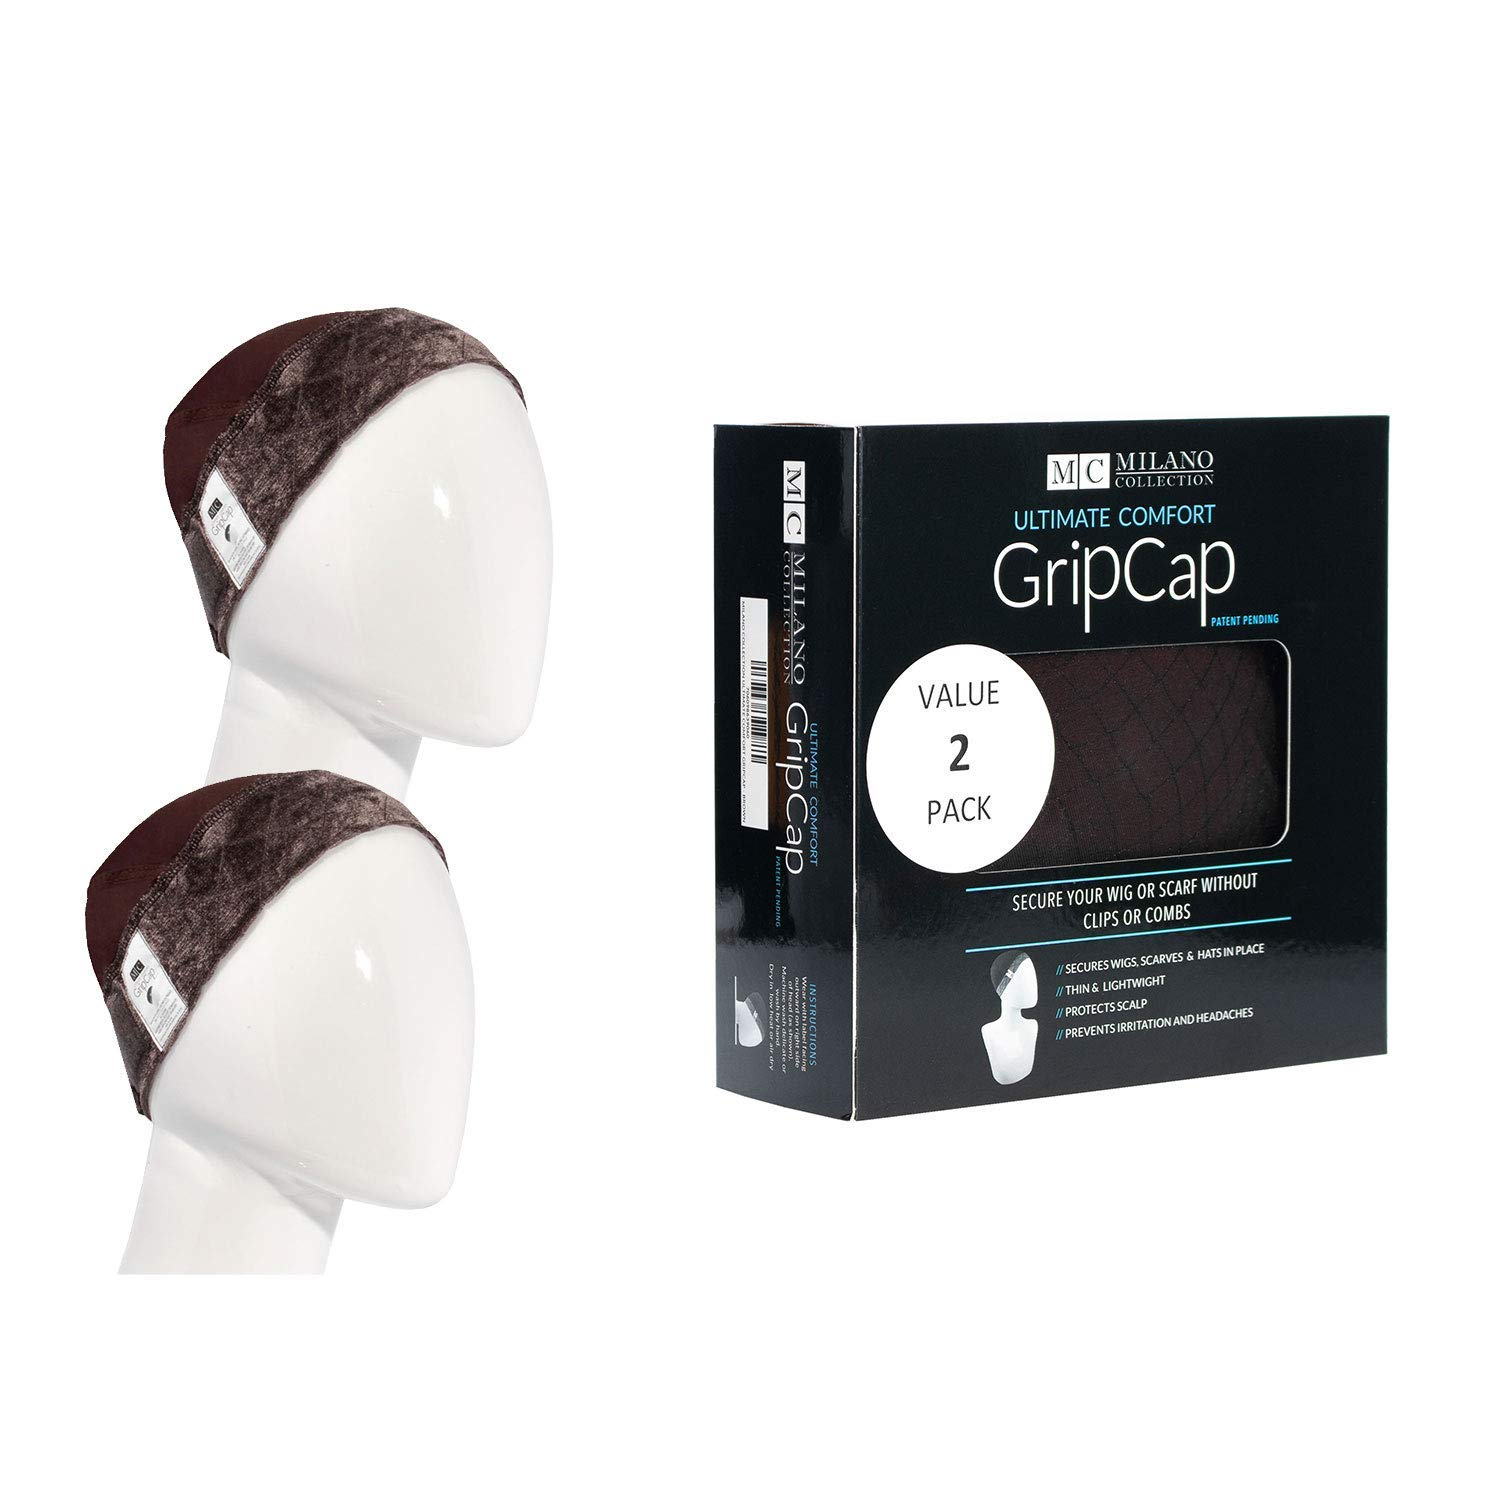 Milano Collection Wig GripCap Value 2 Pack Comfortable, Absorbent Wig Cap with Built-in Wigrip (Brown) by MILANO COLLECTION